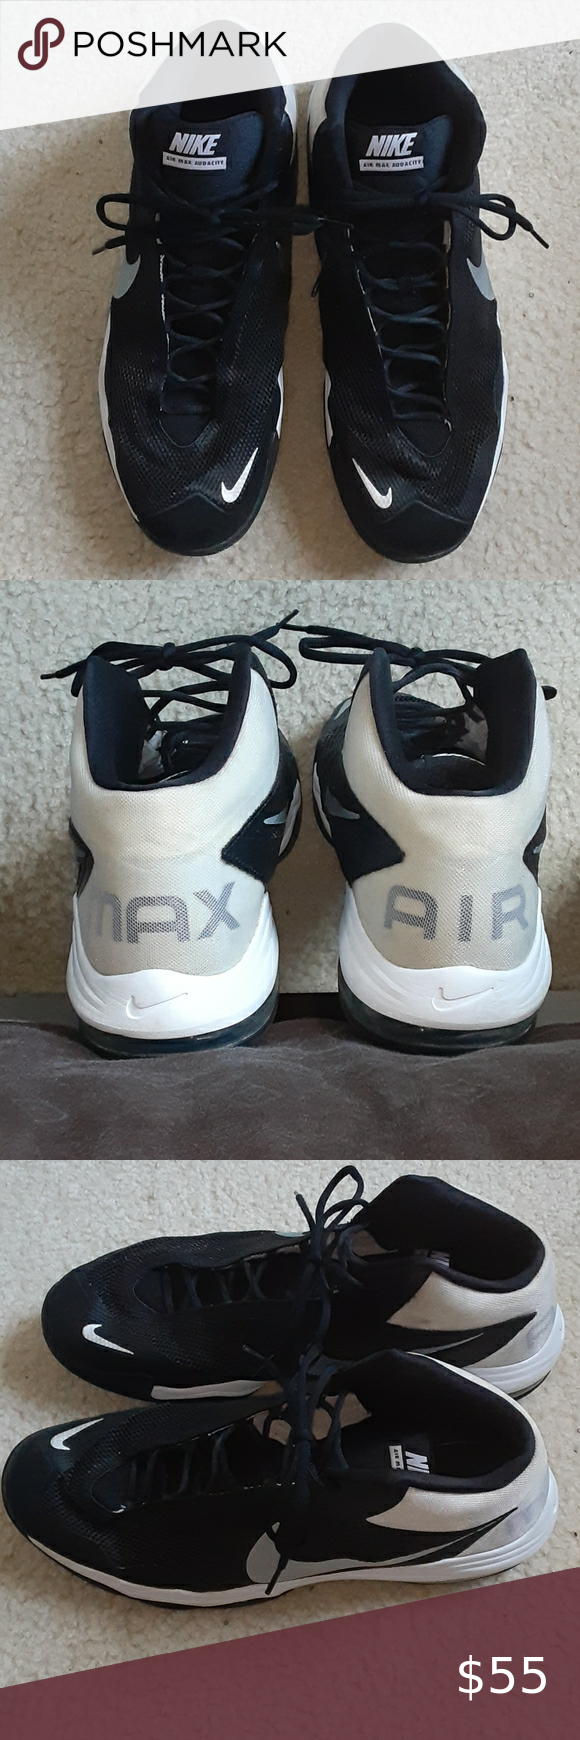 Size 16 Nike Air Max Audacity in 2020